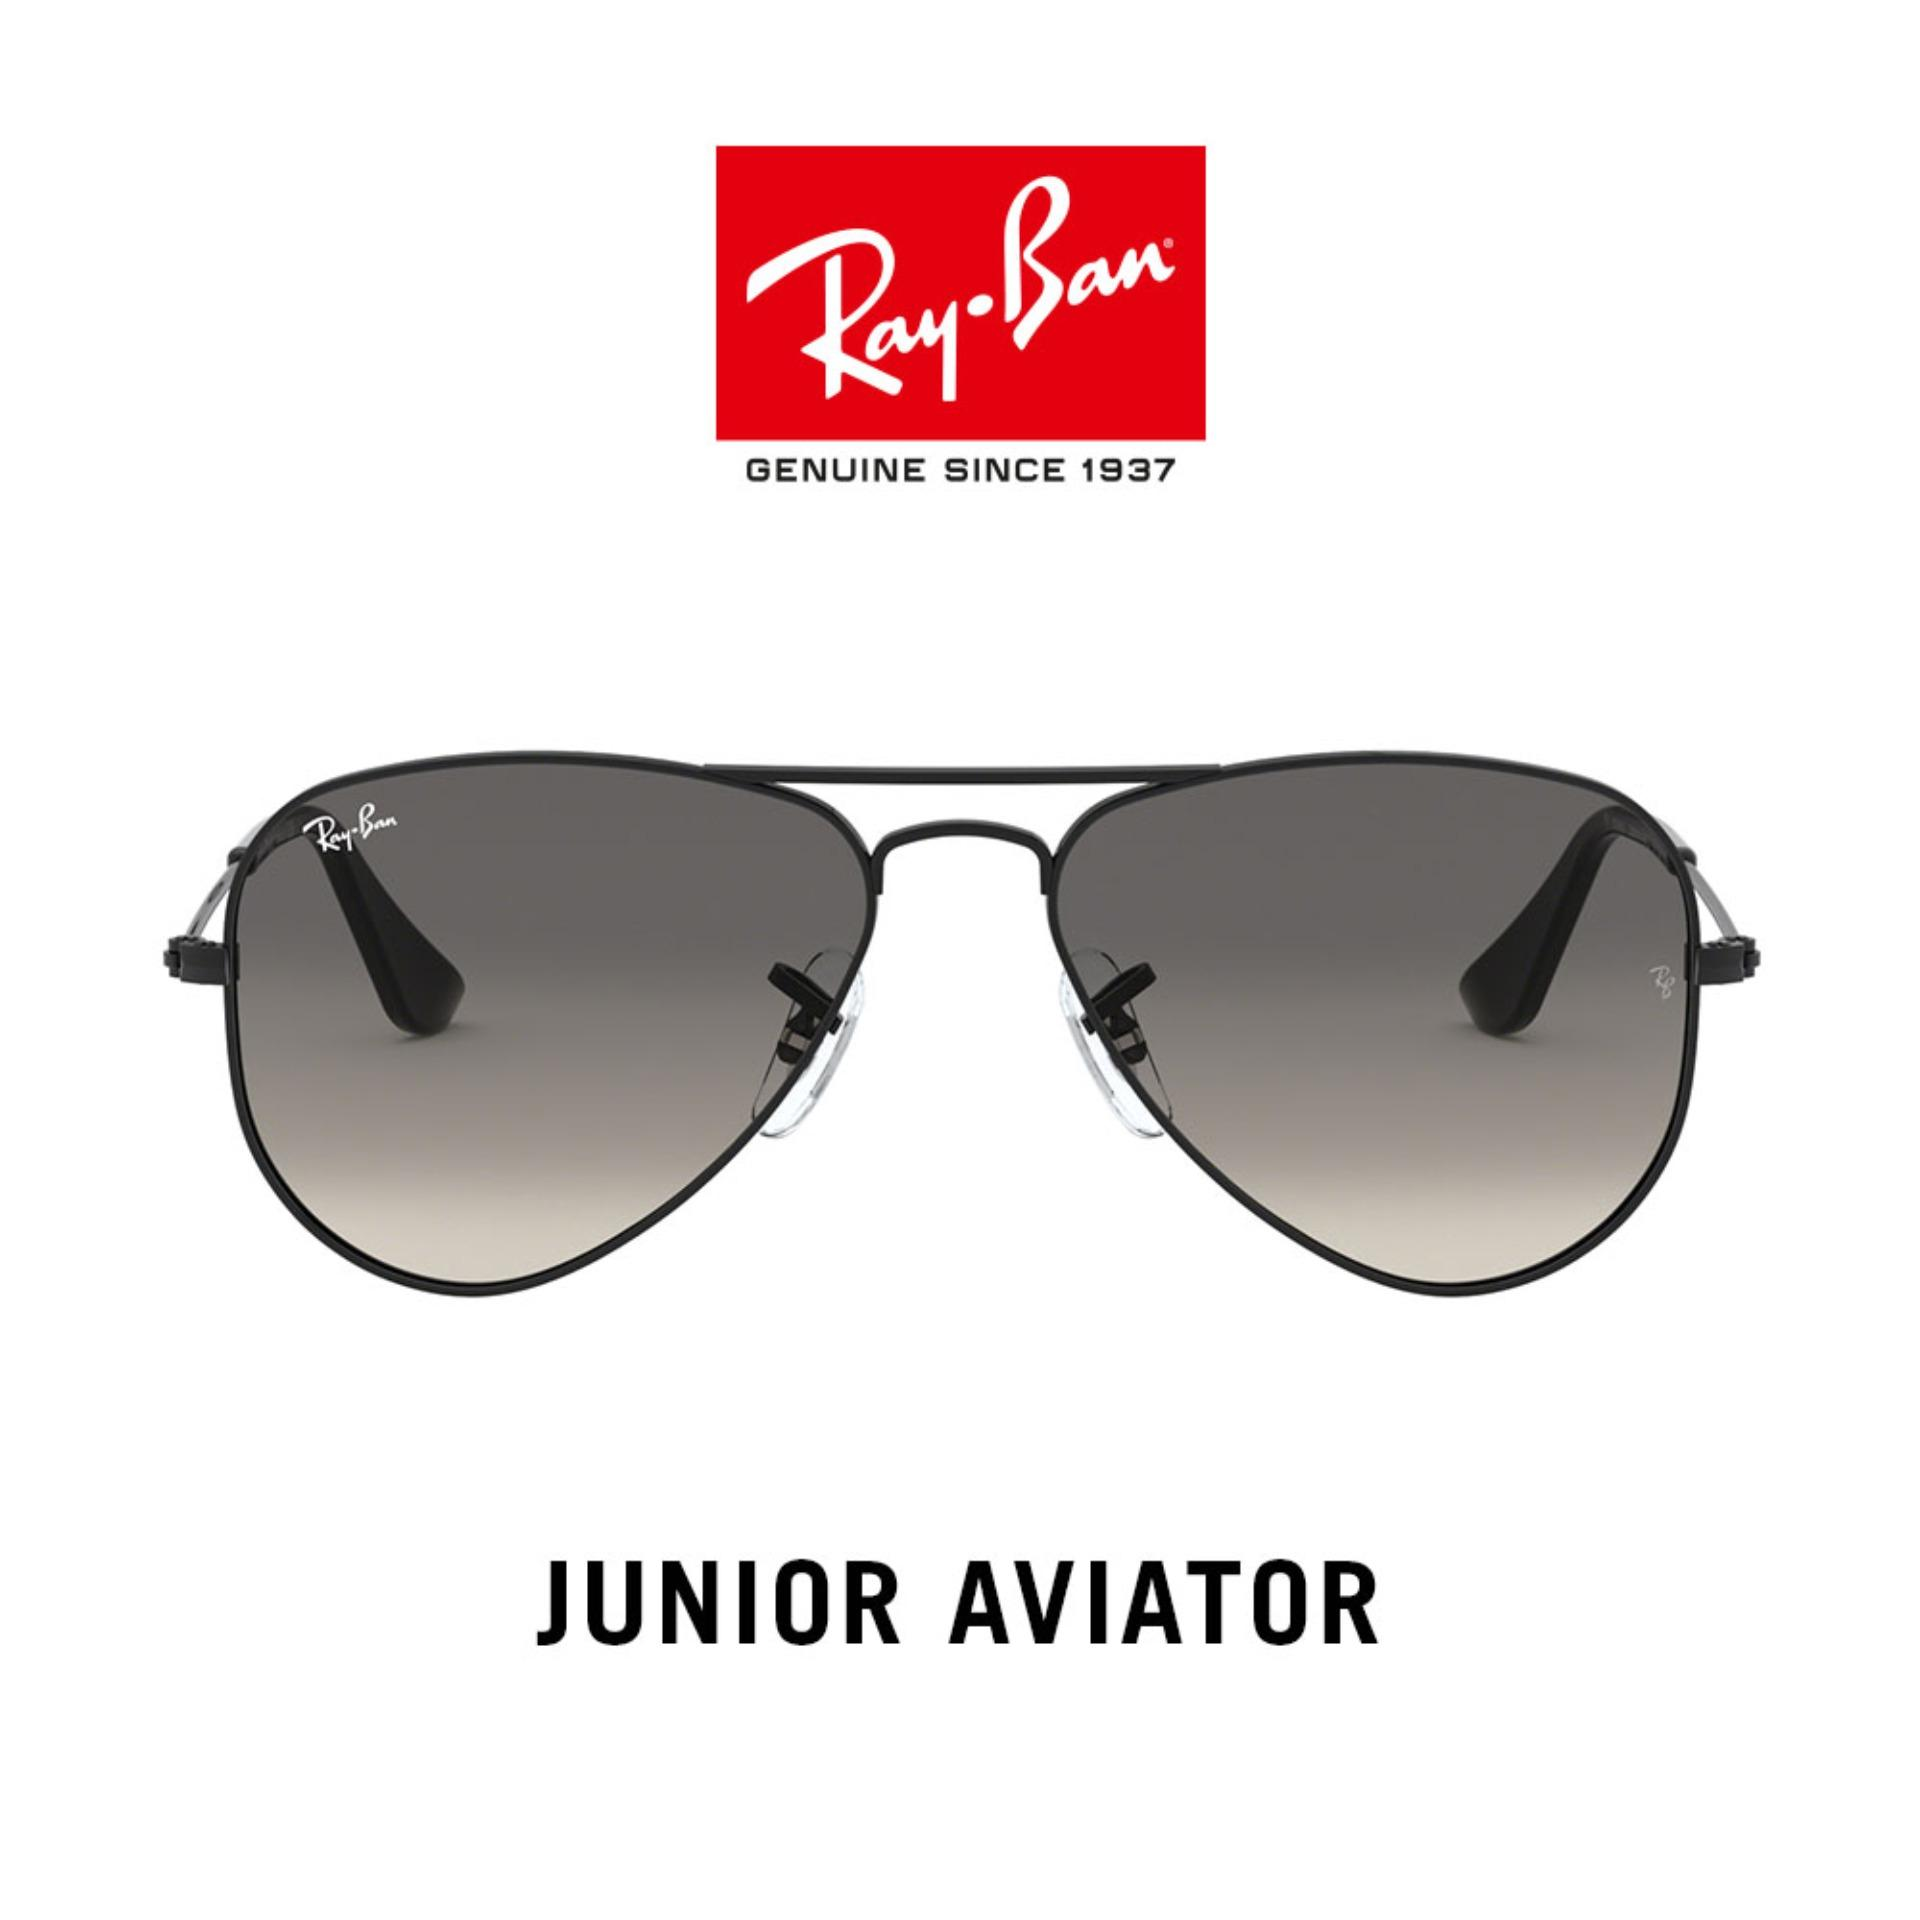 b933be3930 Ray Ban Philippines -Ray Ban Glasses for sale - prices   reviews ...